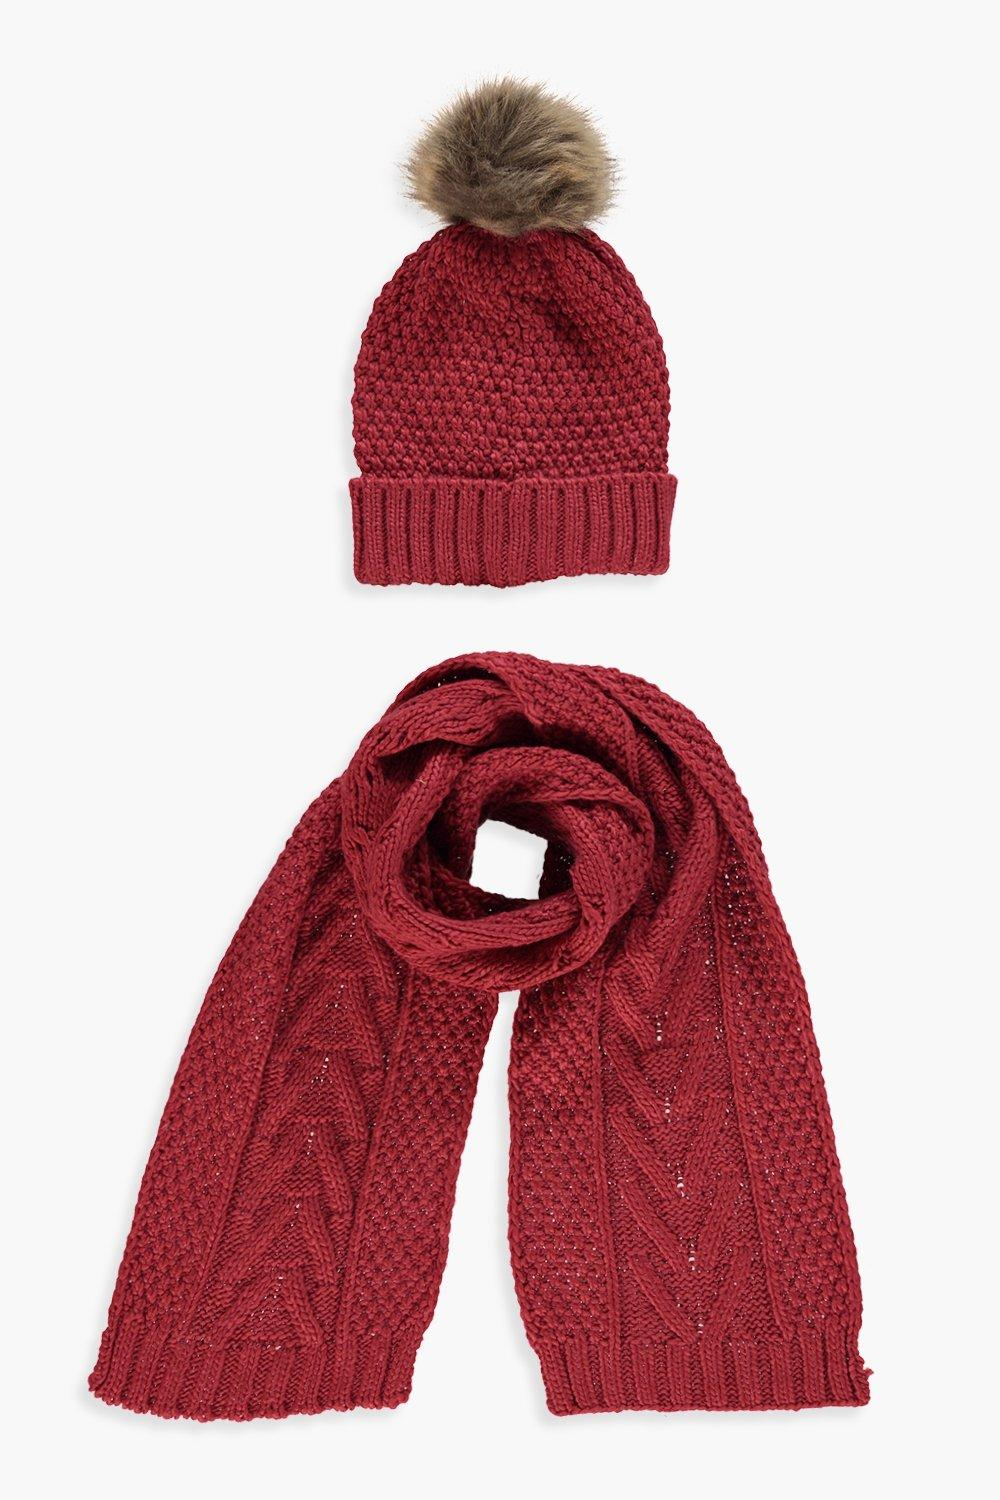 Cable Knit Hat   Scarf Set. Hover to zoom 7919f9dd5d7